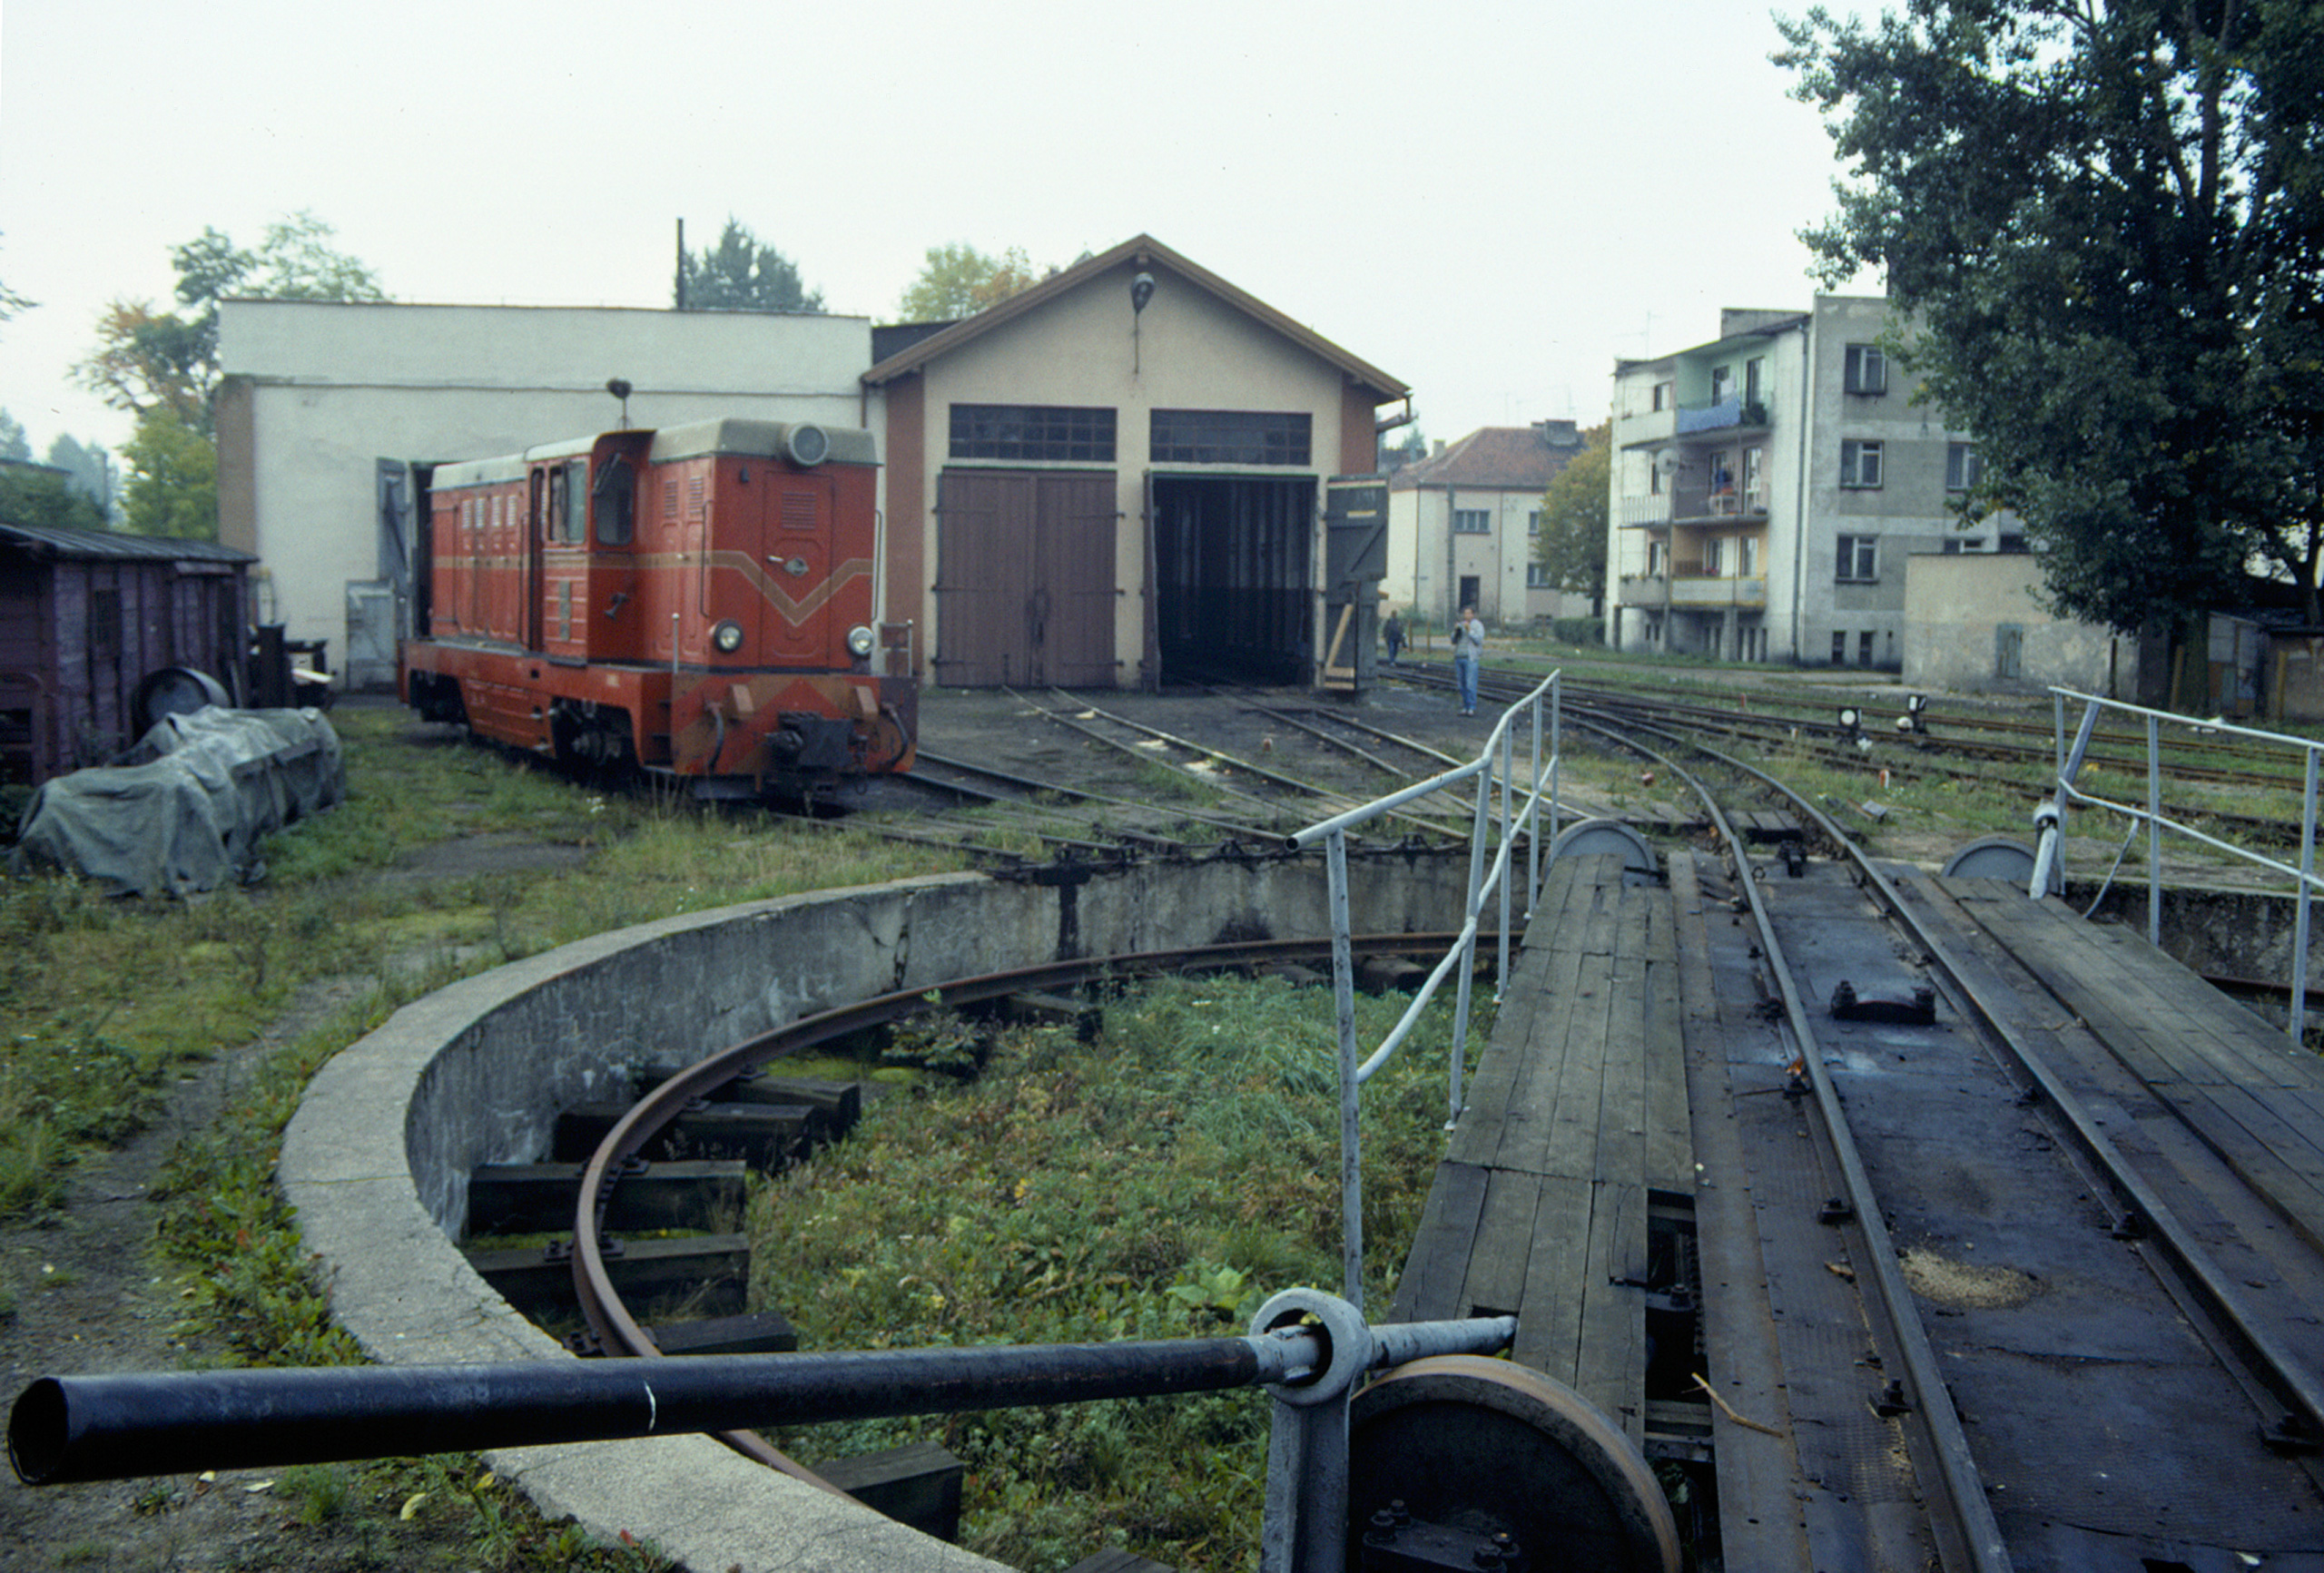 Turntable and repair shops at Nowy Dwór Gdański